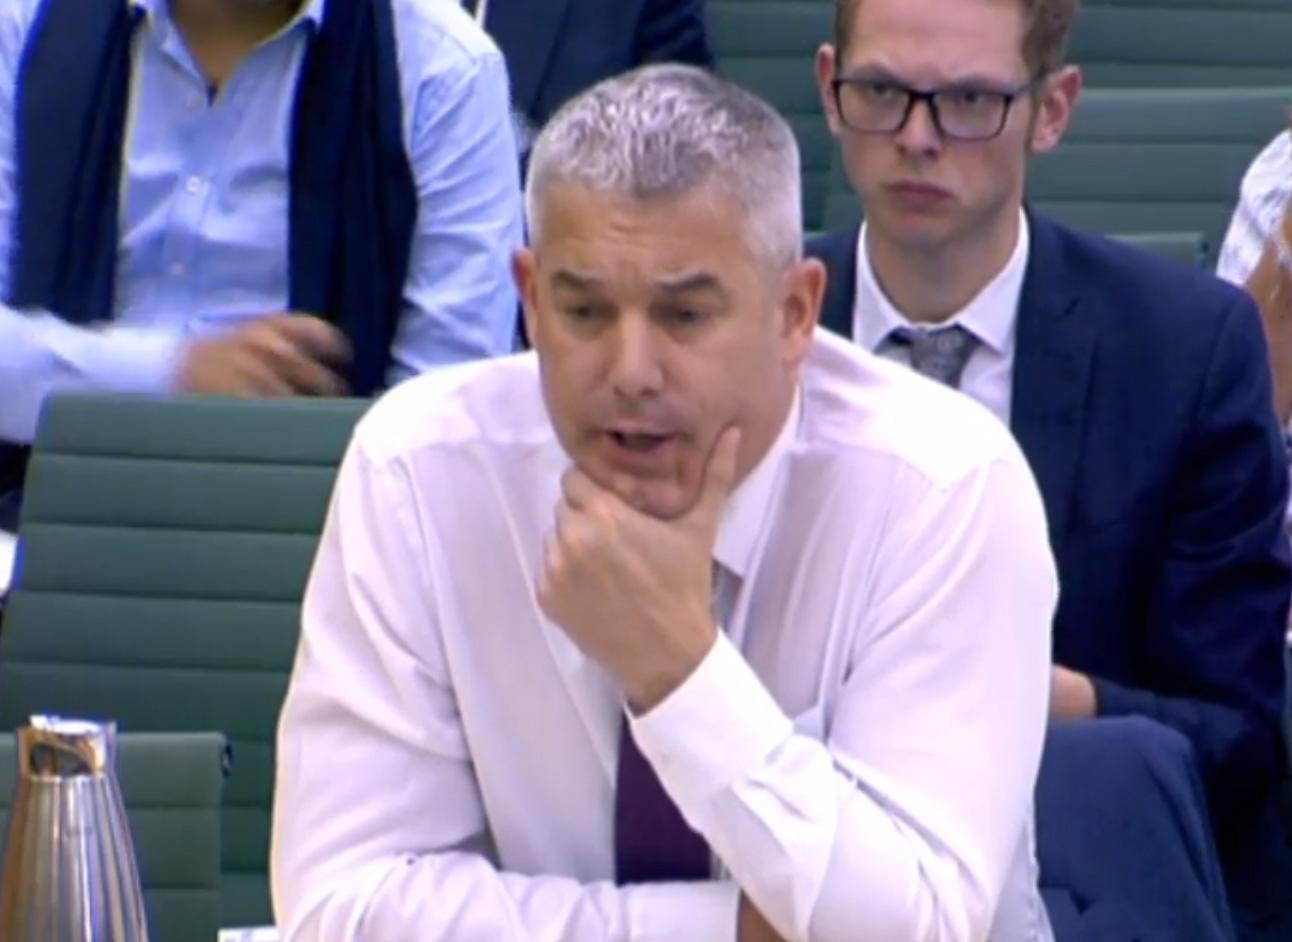 Brexit secretary Stephen Barclay gives evidence to the Exiting the European Union Committee of MPs at the Palace of Westminster on the progress of the UK's negotiations on EU withdrawal.